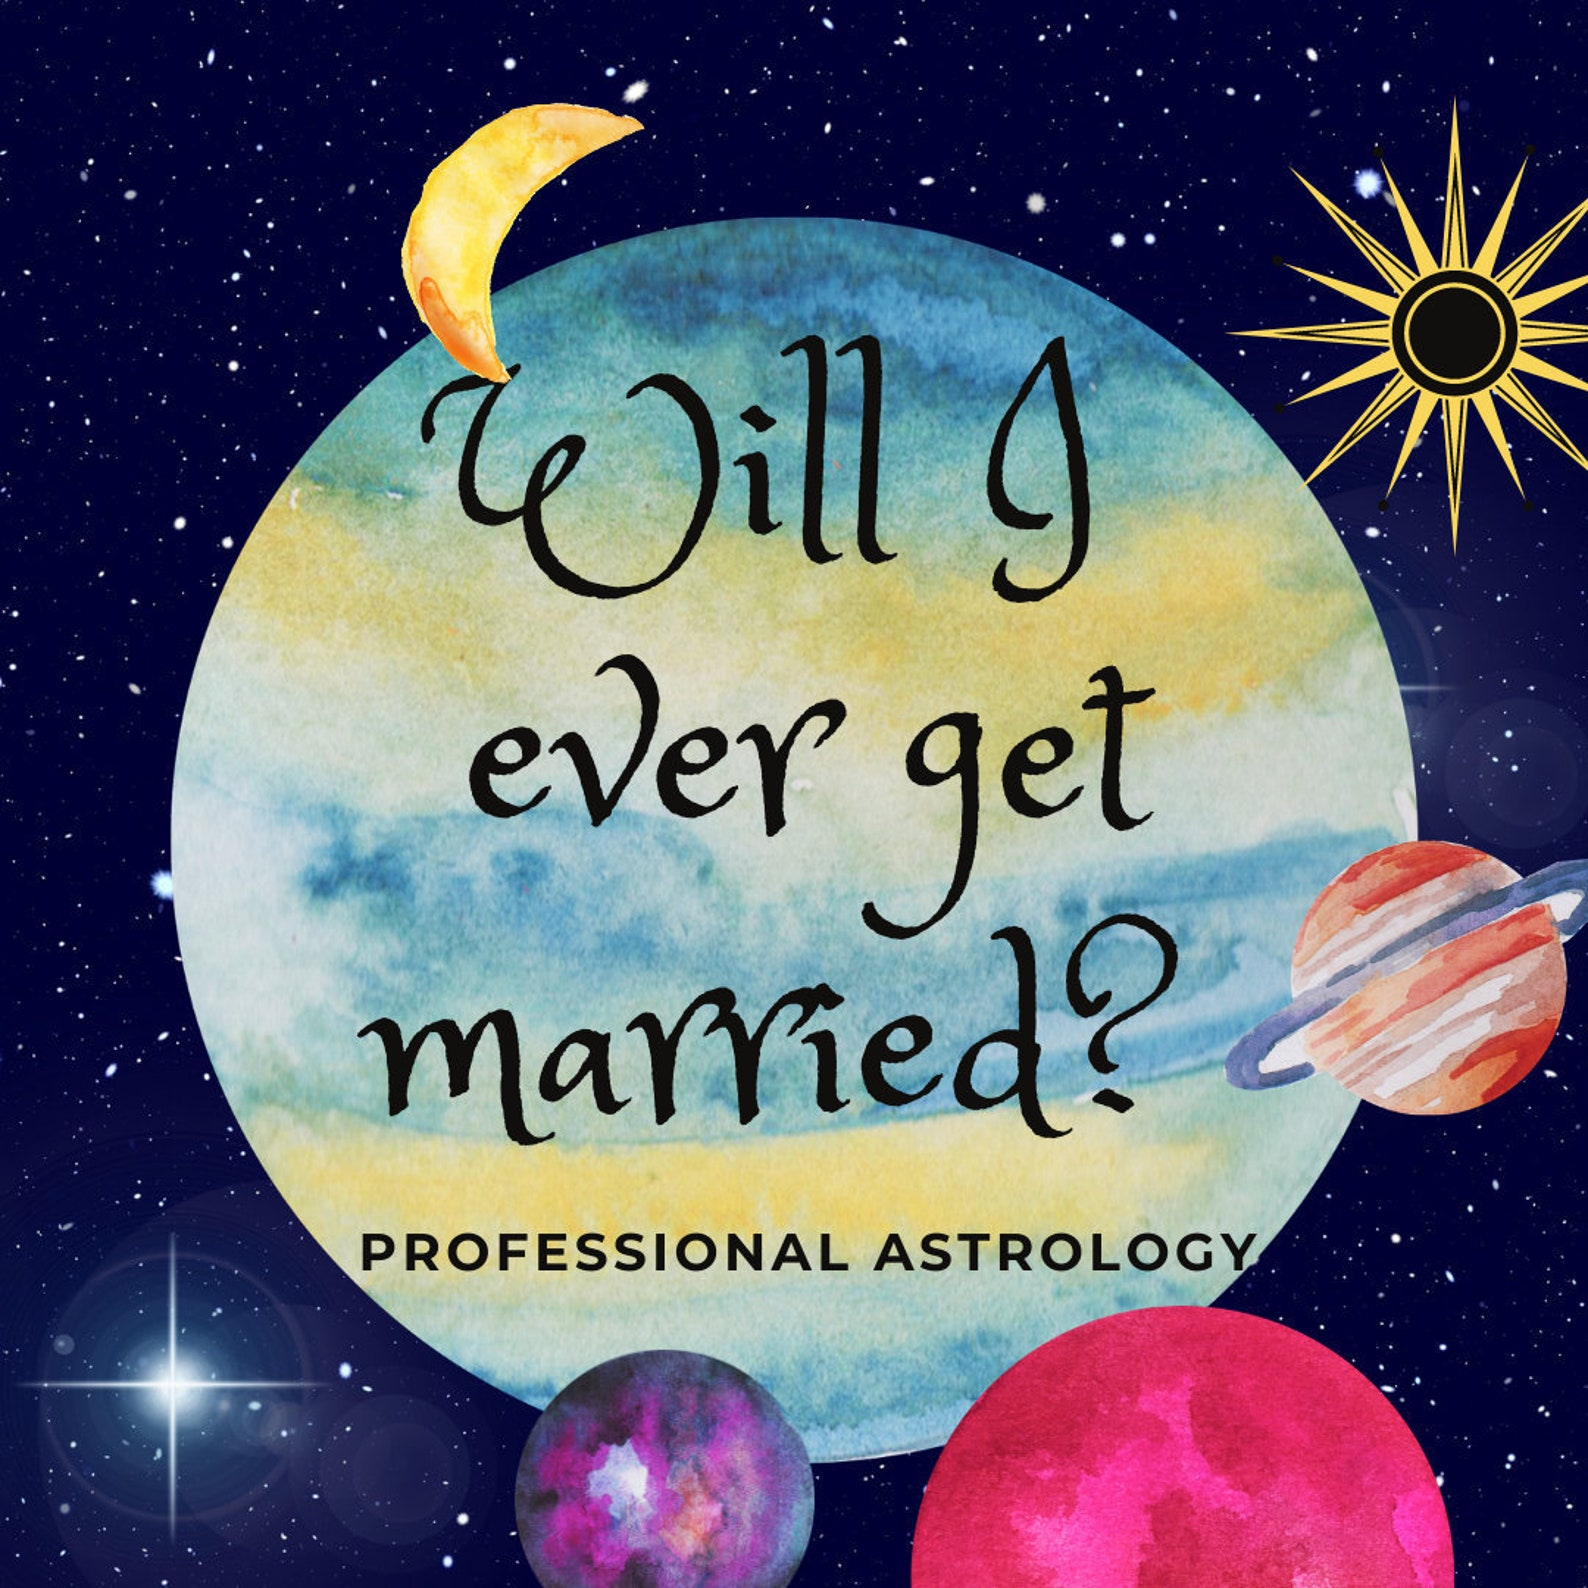 Will I get Married Astrology Reading Love Reading | Etsy